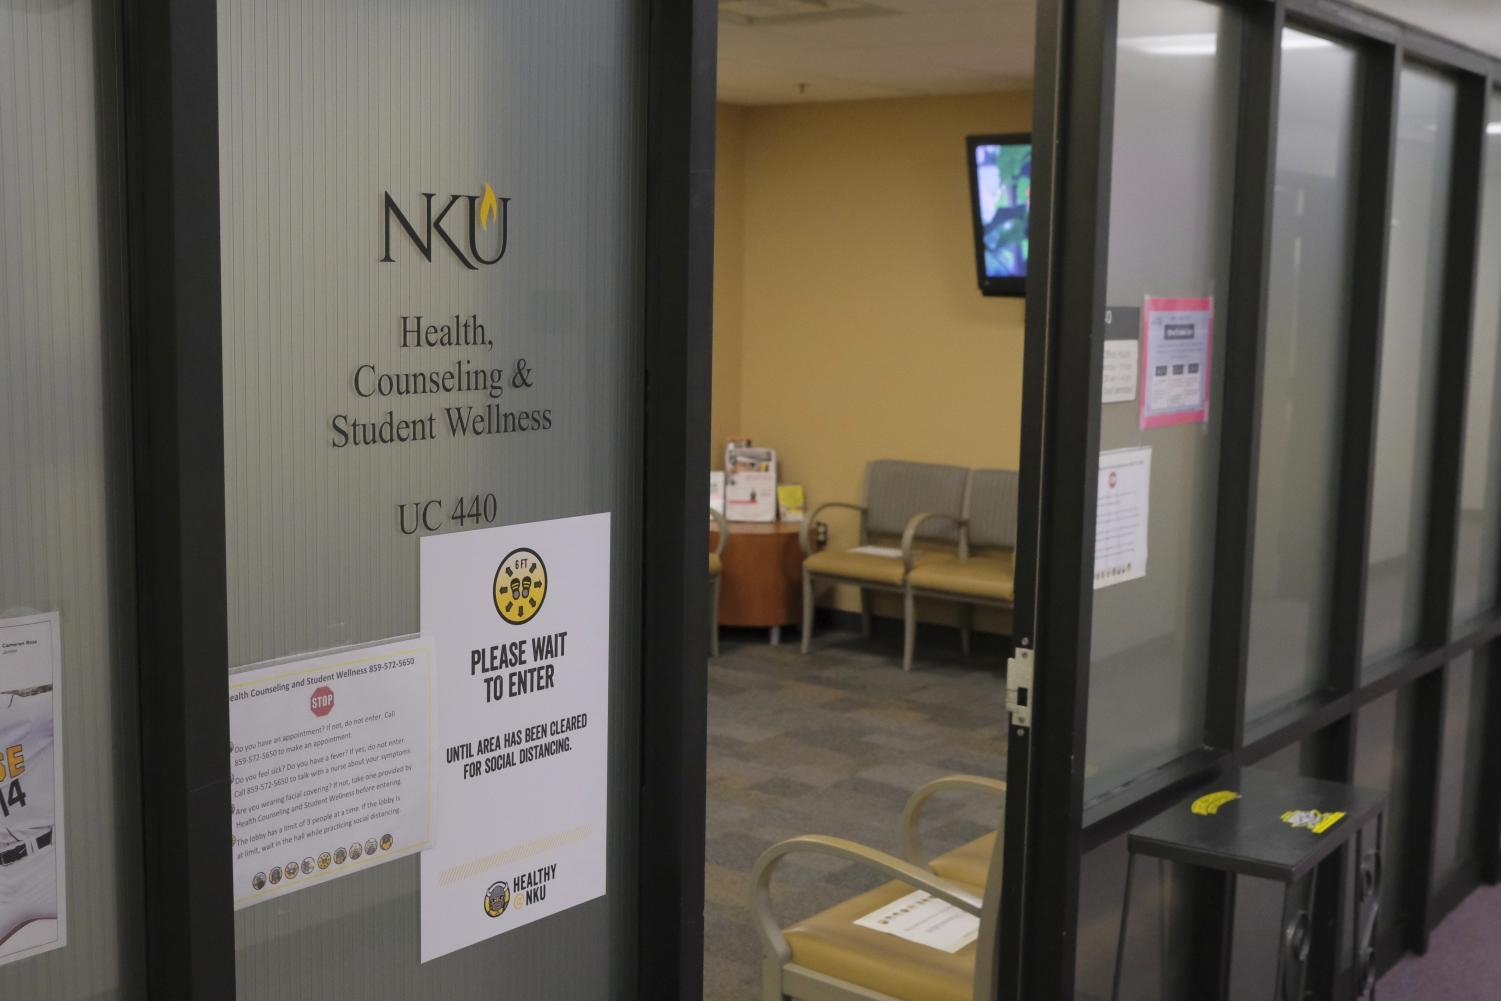 The entrance to Health, Counseling and Student Wellness in University Center. A frosted glass door.